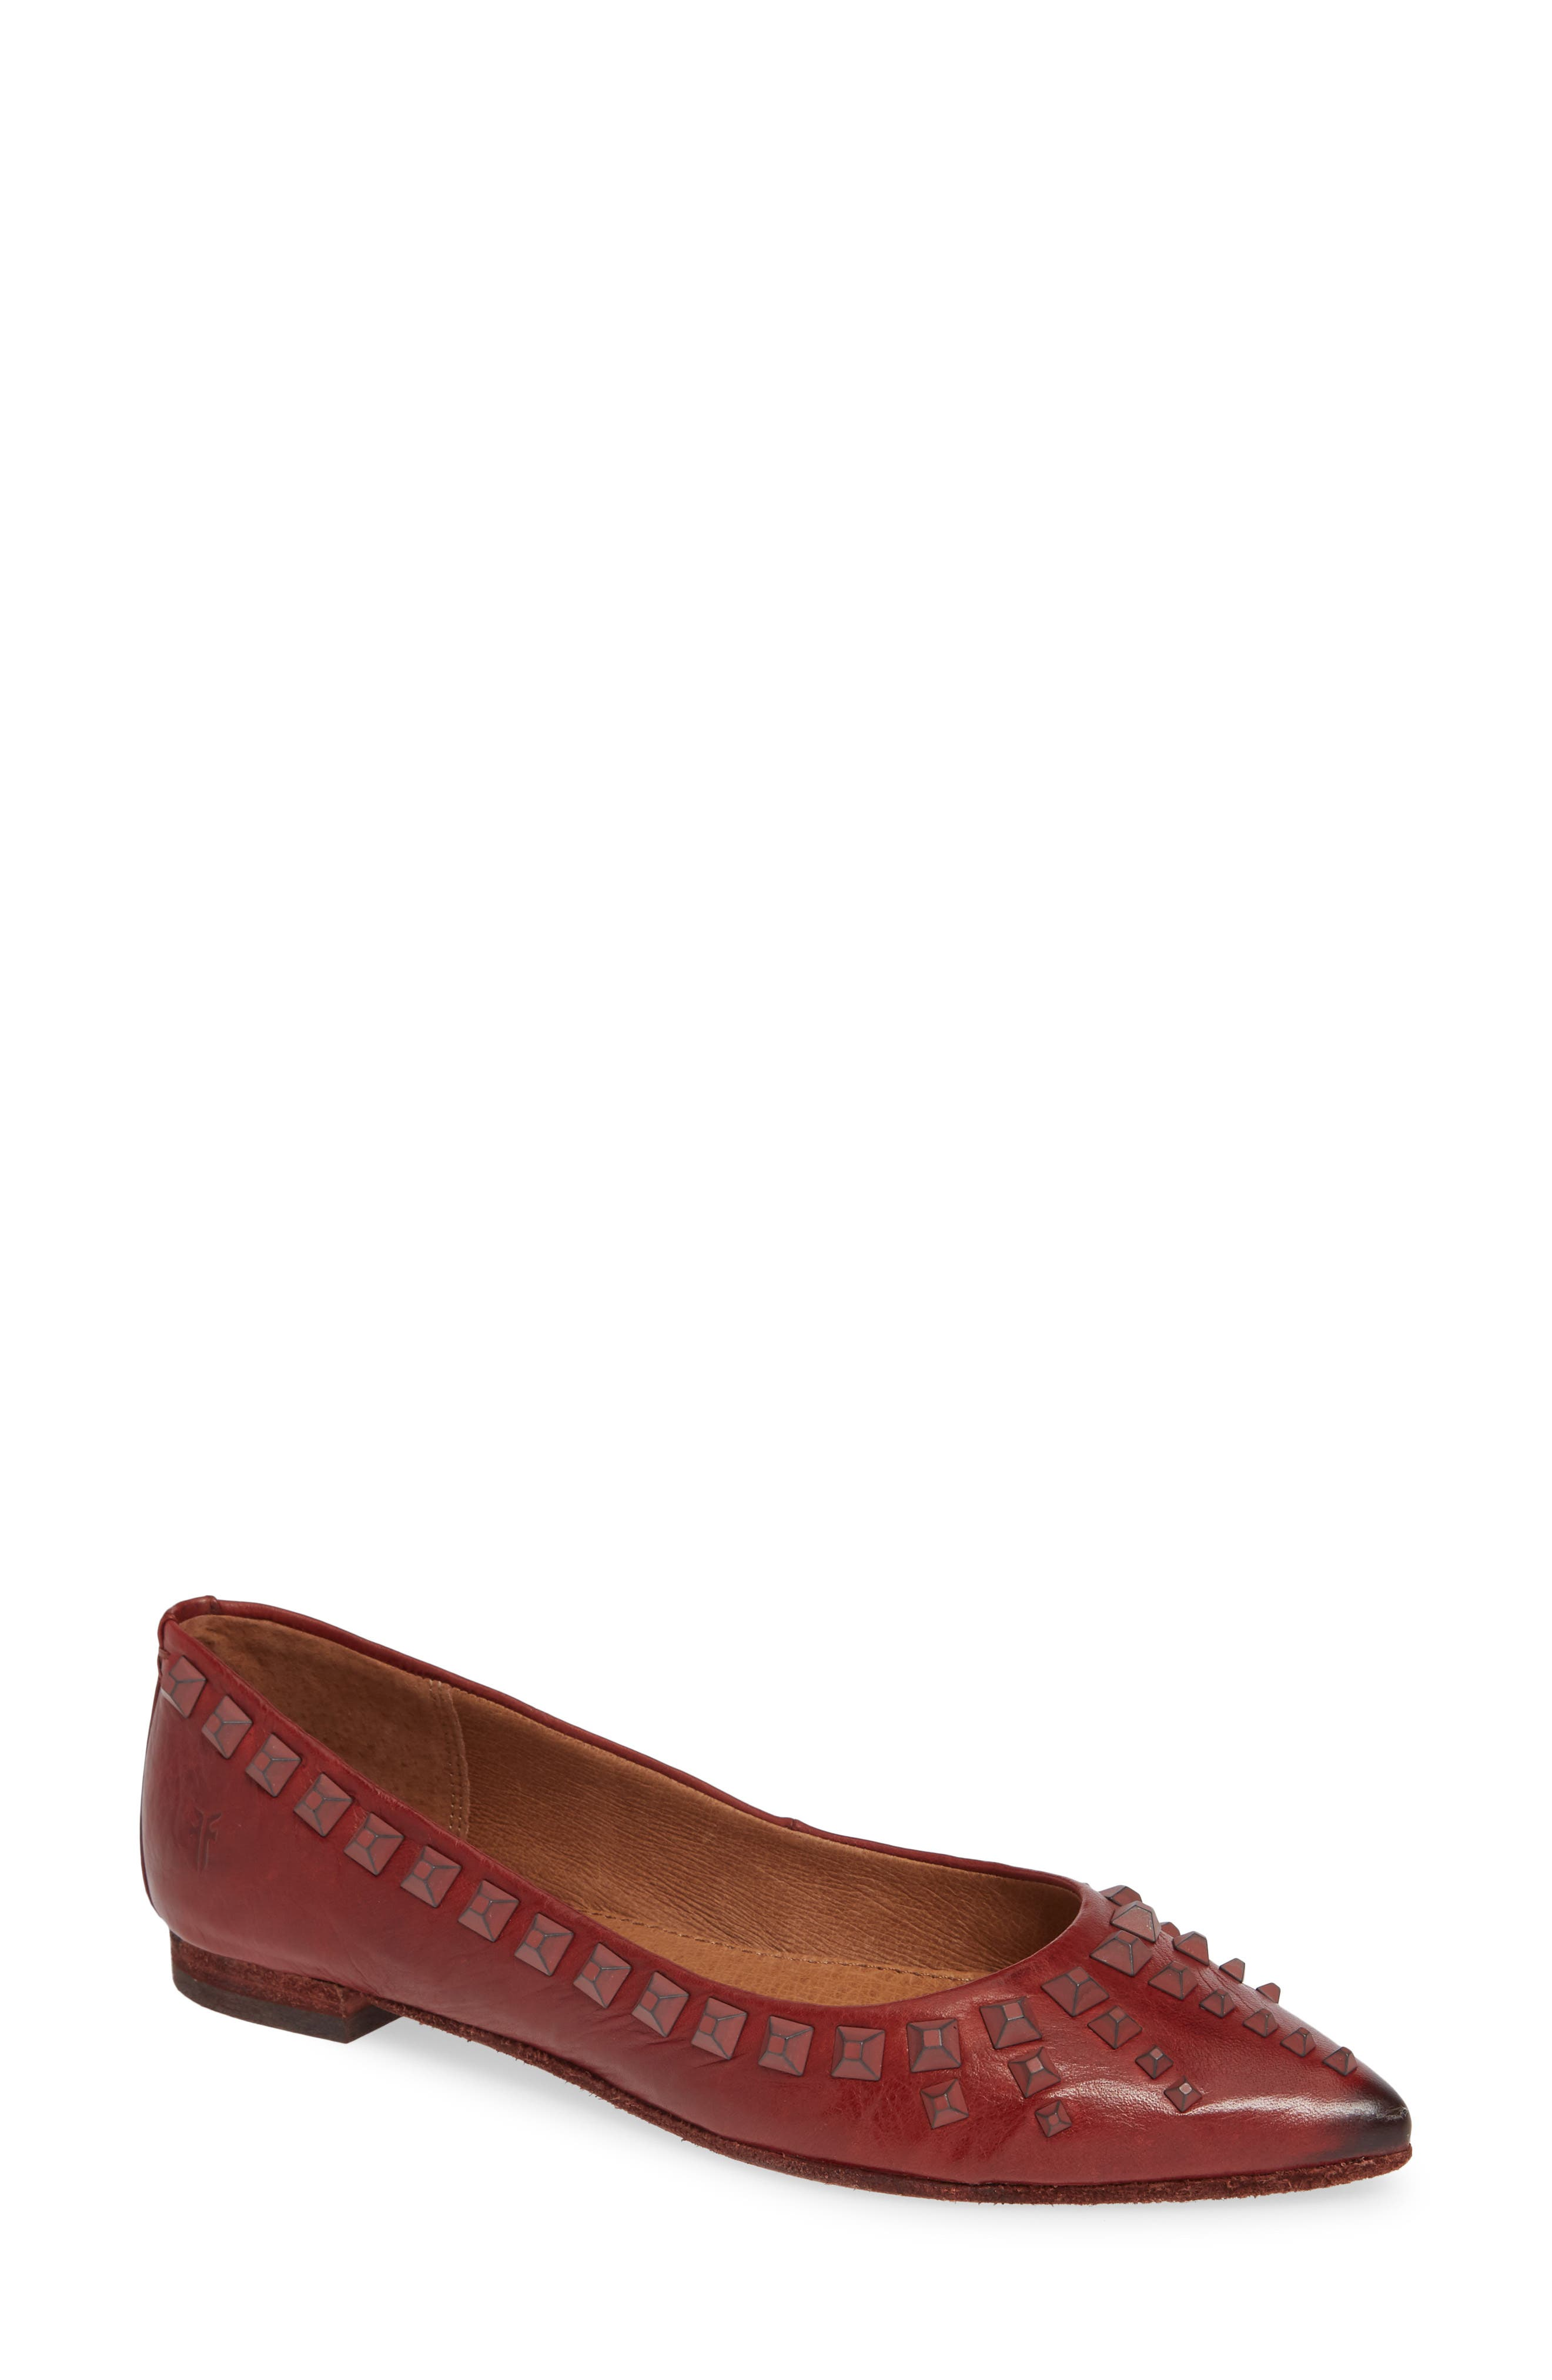 Sienna Deco Stud Ballet Flat,                             Main thumbnail 1, color,                             RED CLAY LEATHER